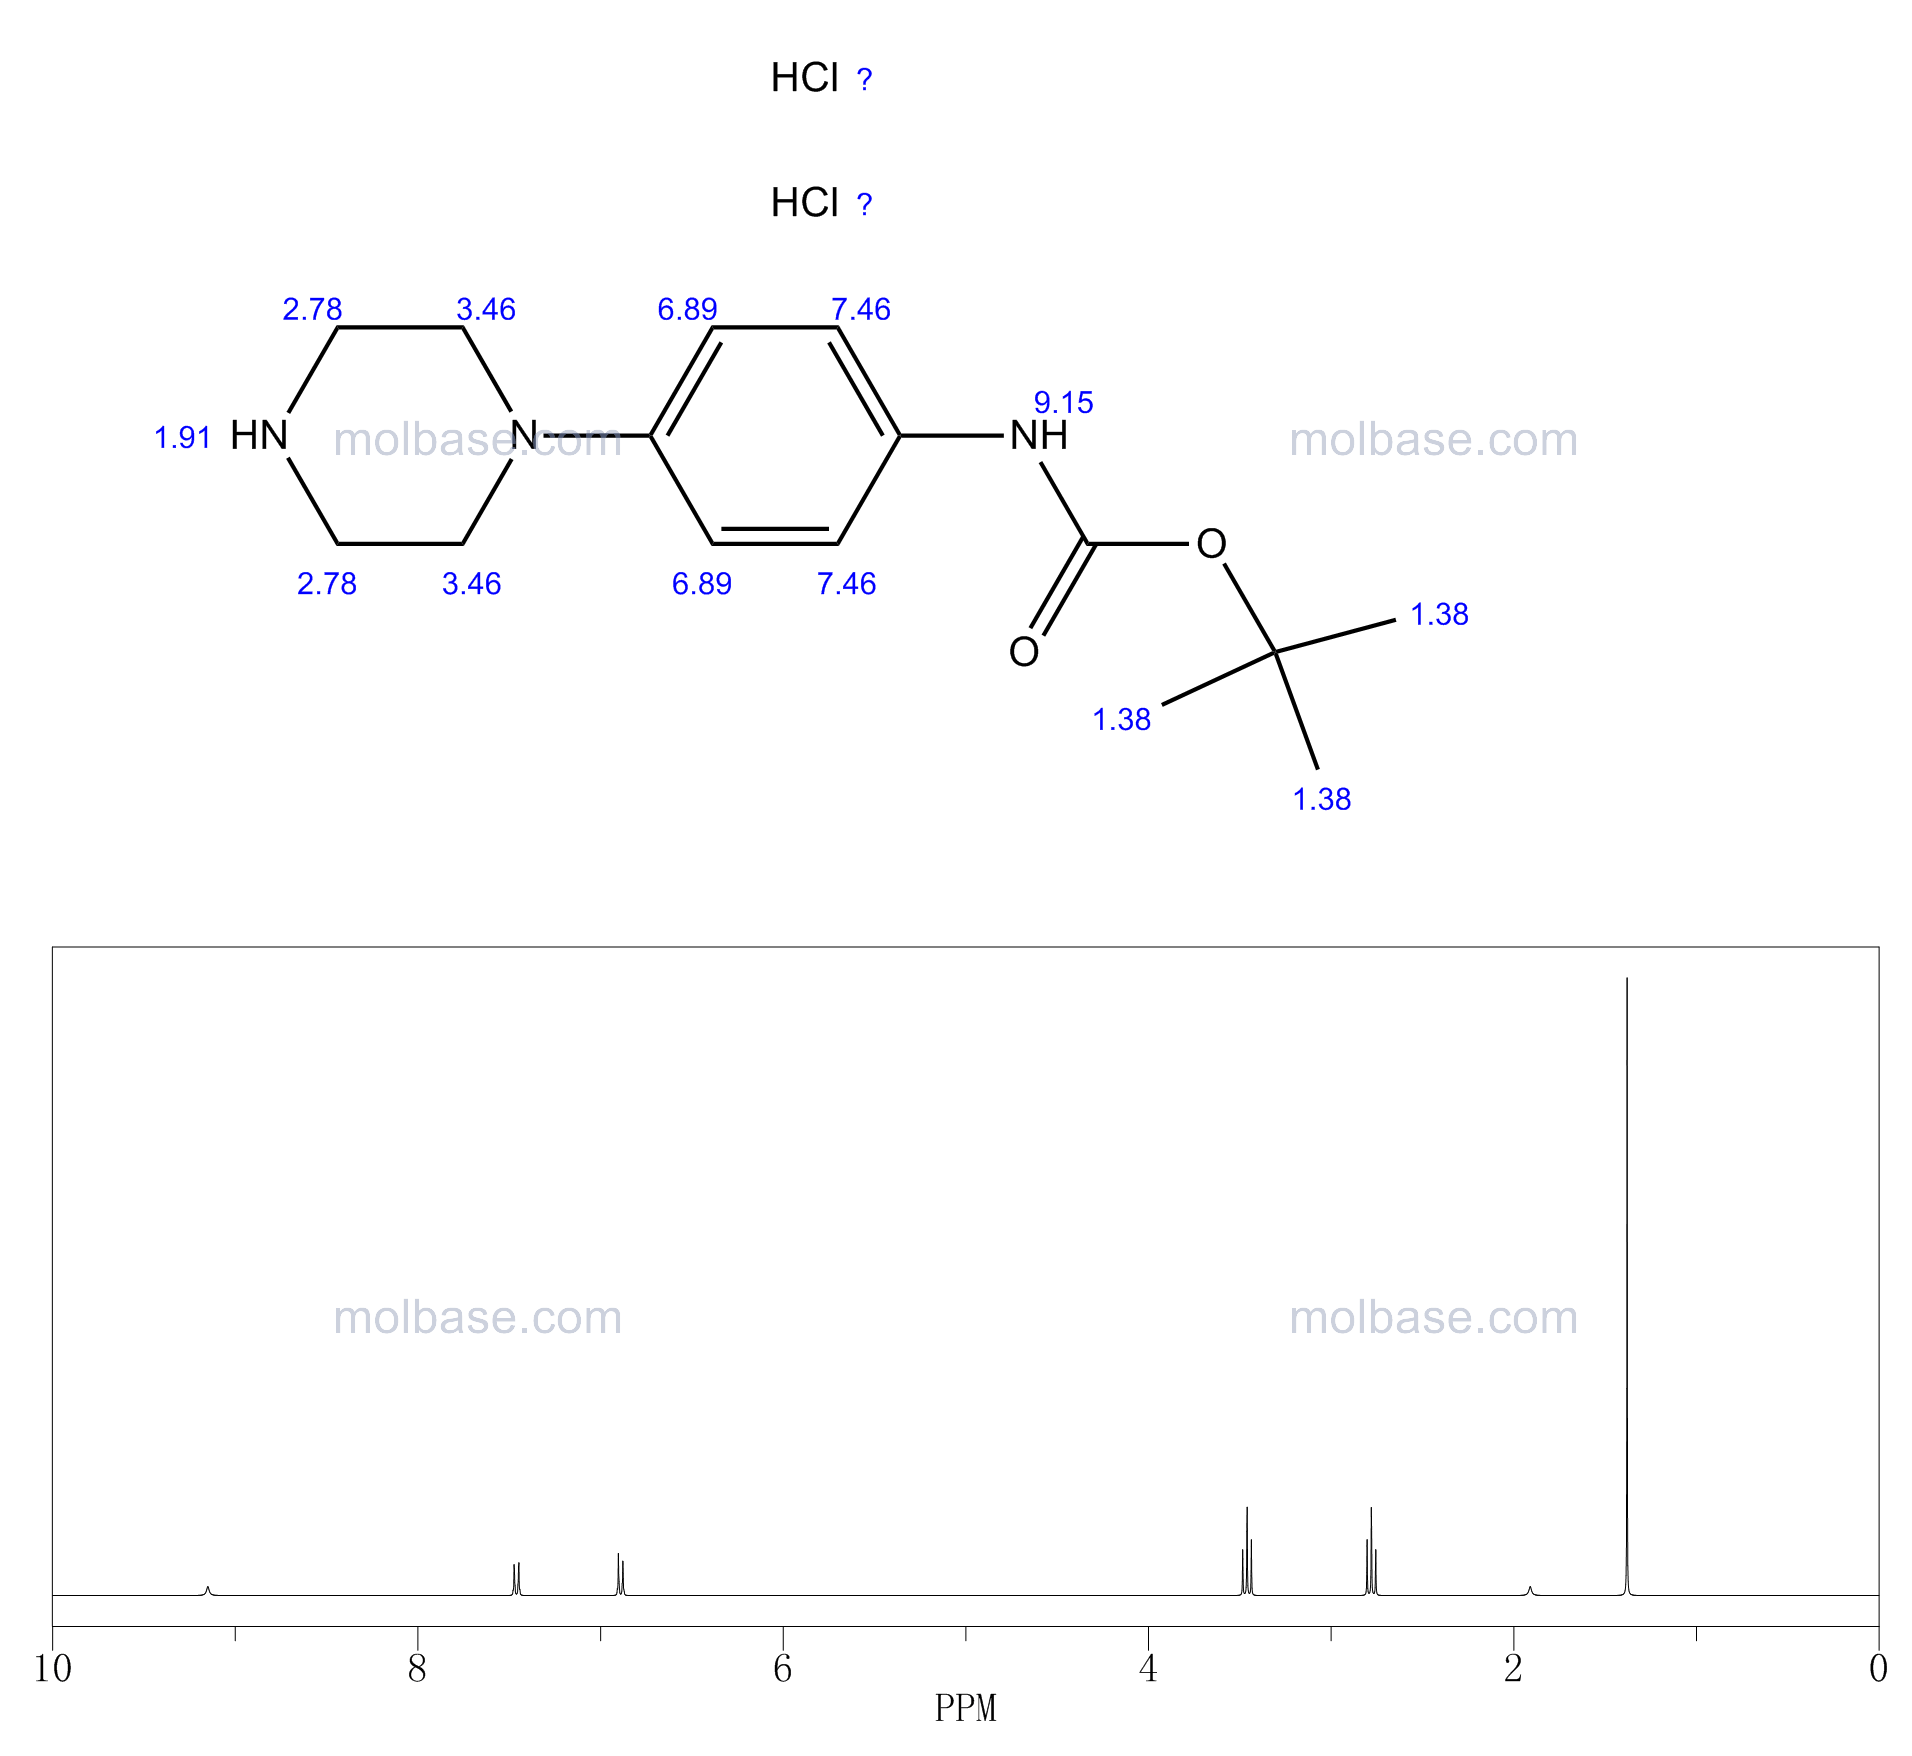 tert-butyl N-(4-piperazin-1-ylphenyl)carbamate NMR spectra analysis, Chemical CAS NO. 273727-52-9 NMR spectral analysis, tert-butyl N-(4-piperazin-1-ylphenyl)carbamate C-NMR spectrum